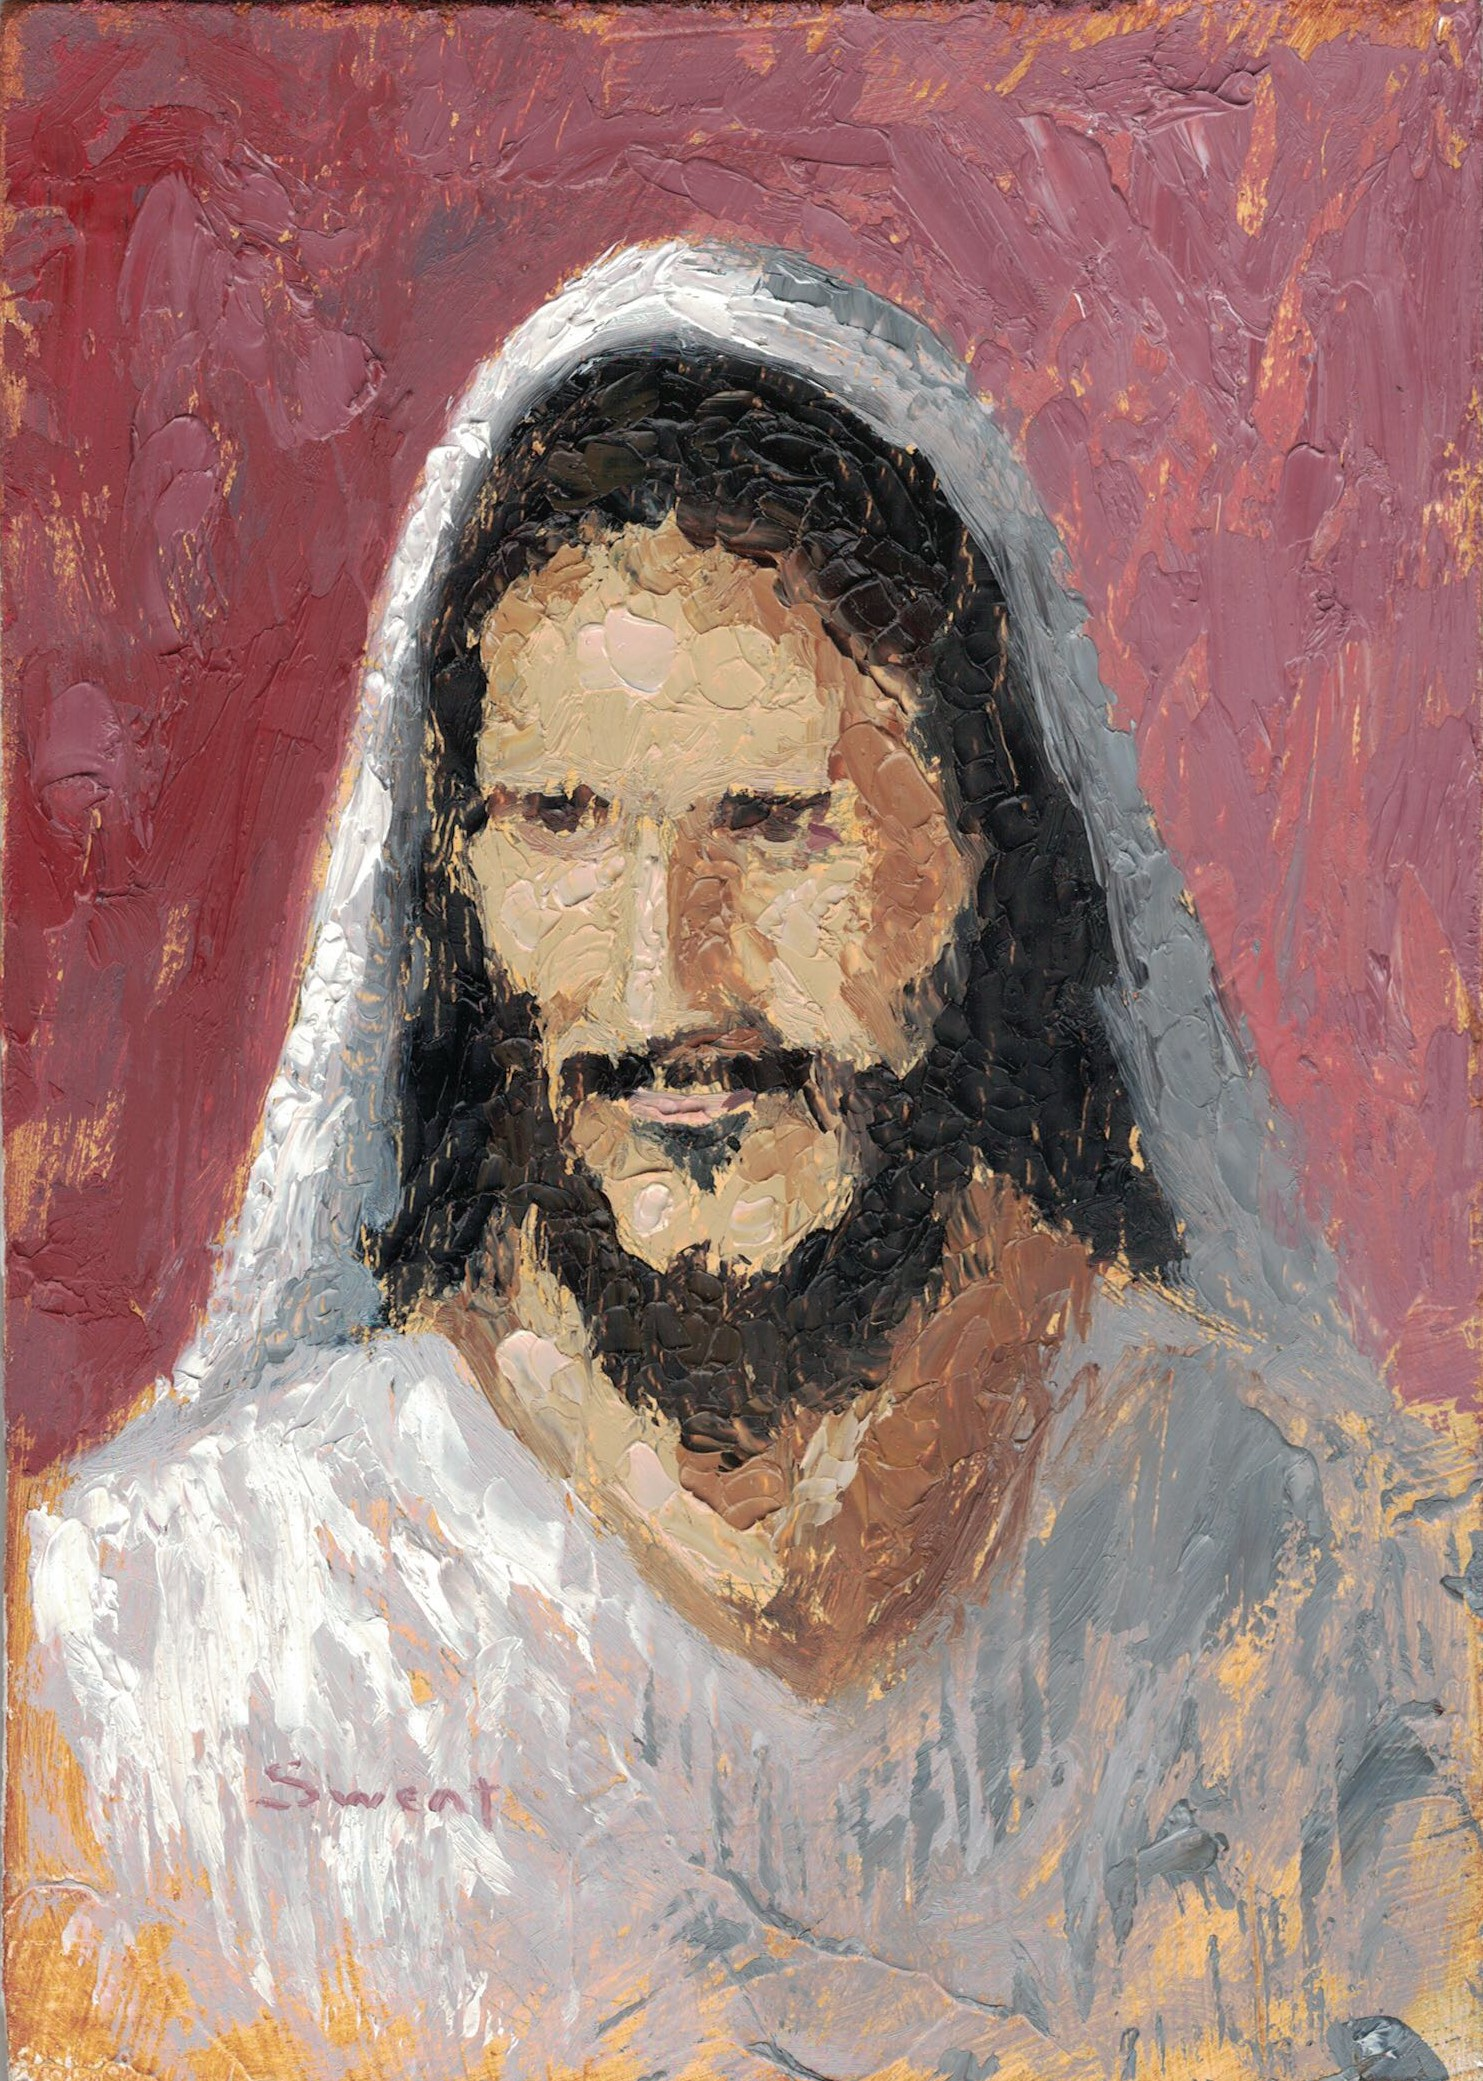 Man of Patience Jesus Christ painting by Anthony Sweat